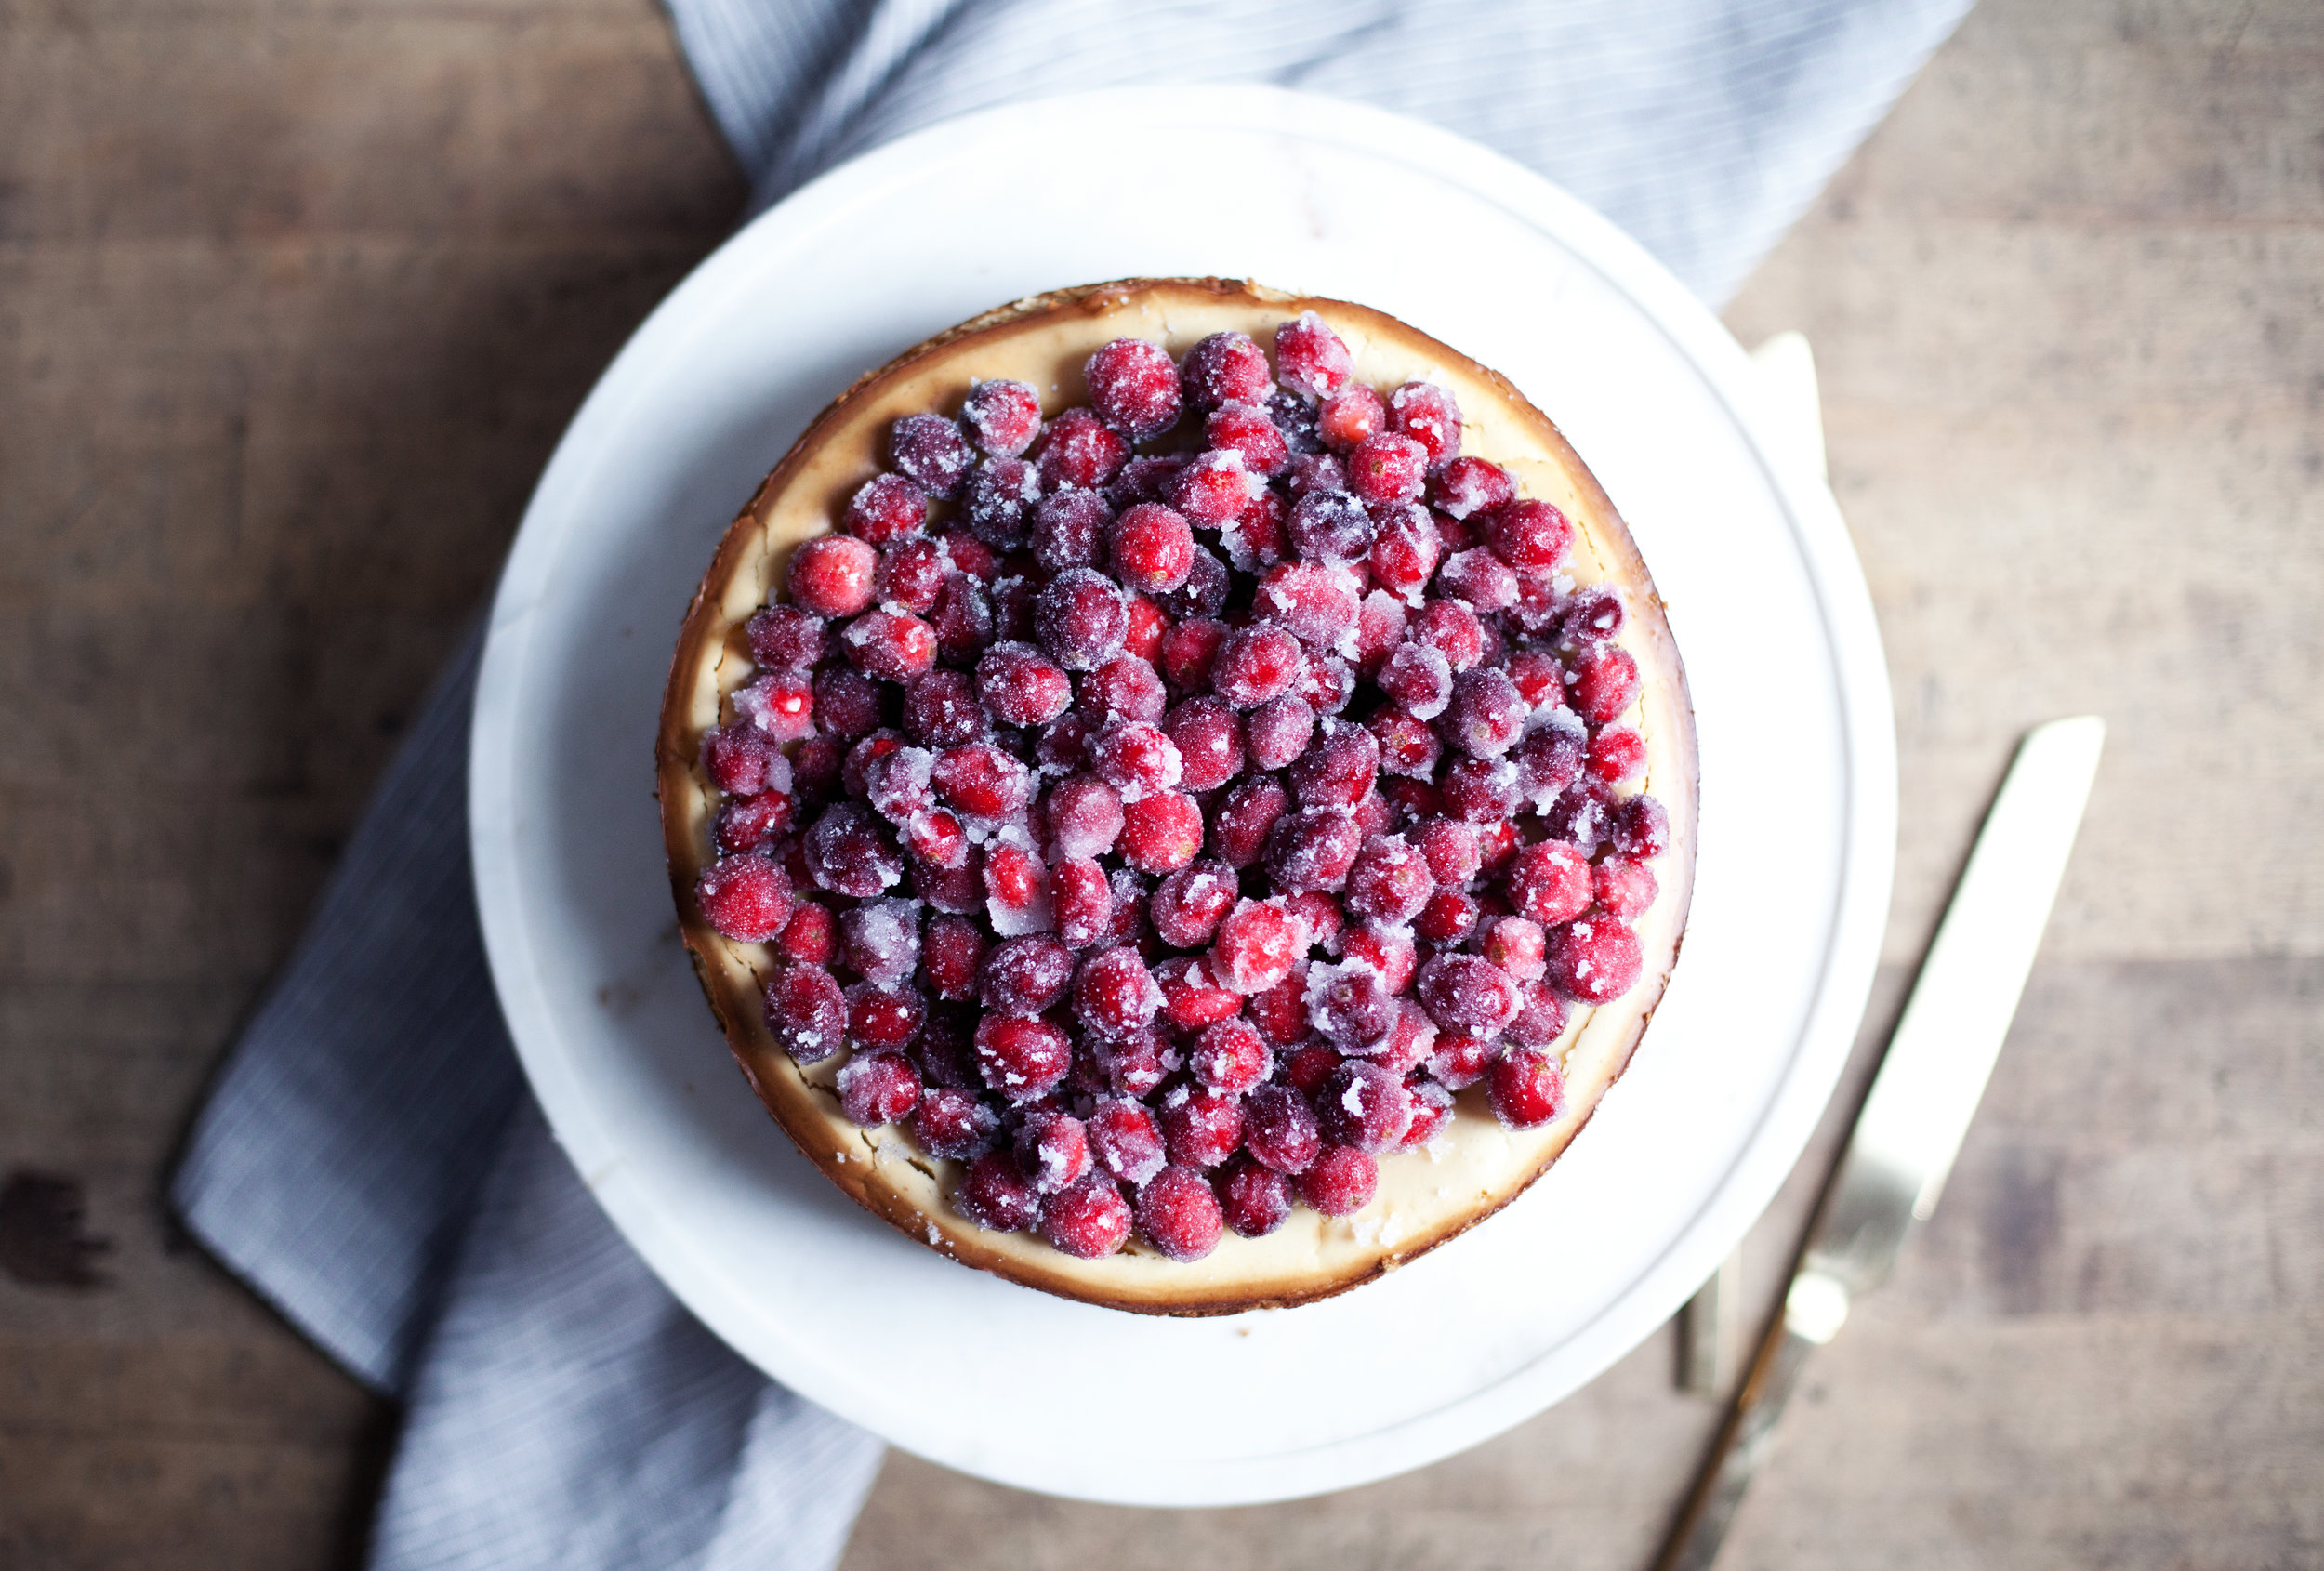 sugared cranberry cheesecake iii.jpg